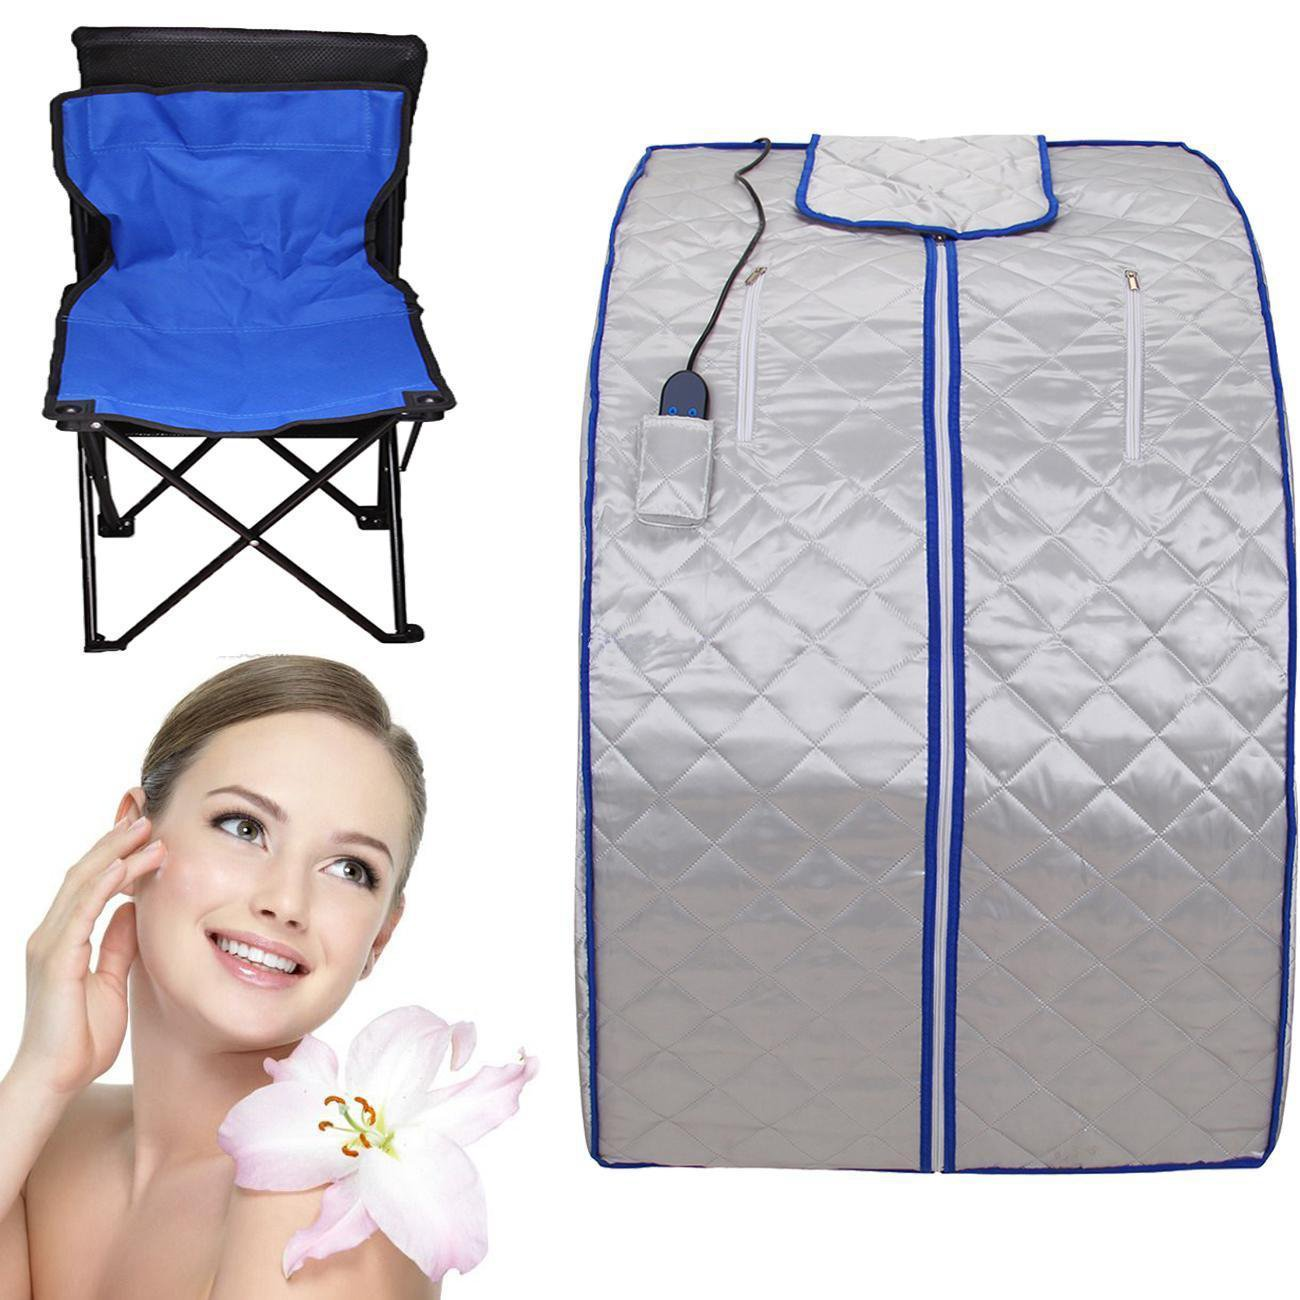 For Sauna Portable Far Infrared Spa Sauna Weight Loss Negative Ion Detox Therapy Personal Fir Infrared Sauna Room Folding Chair